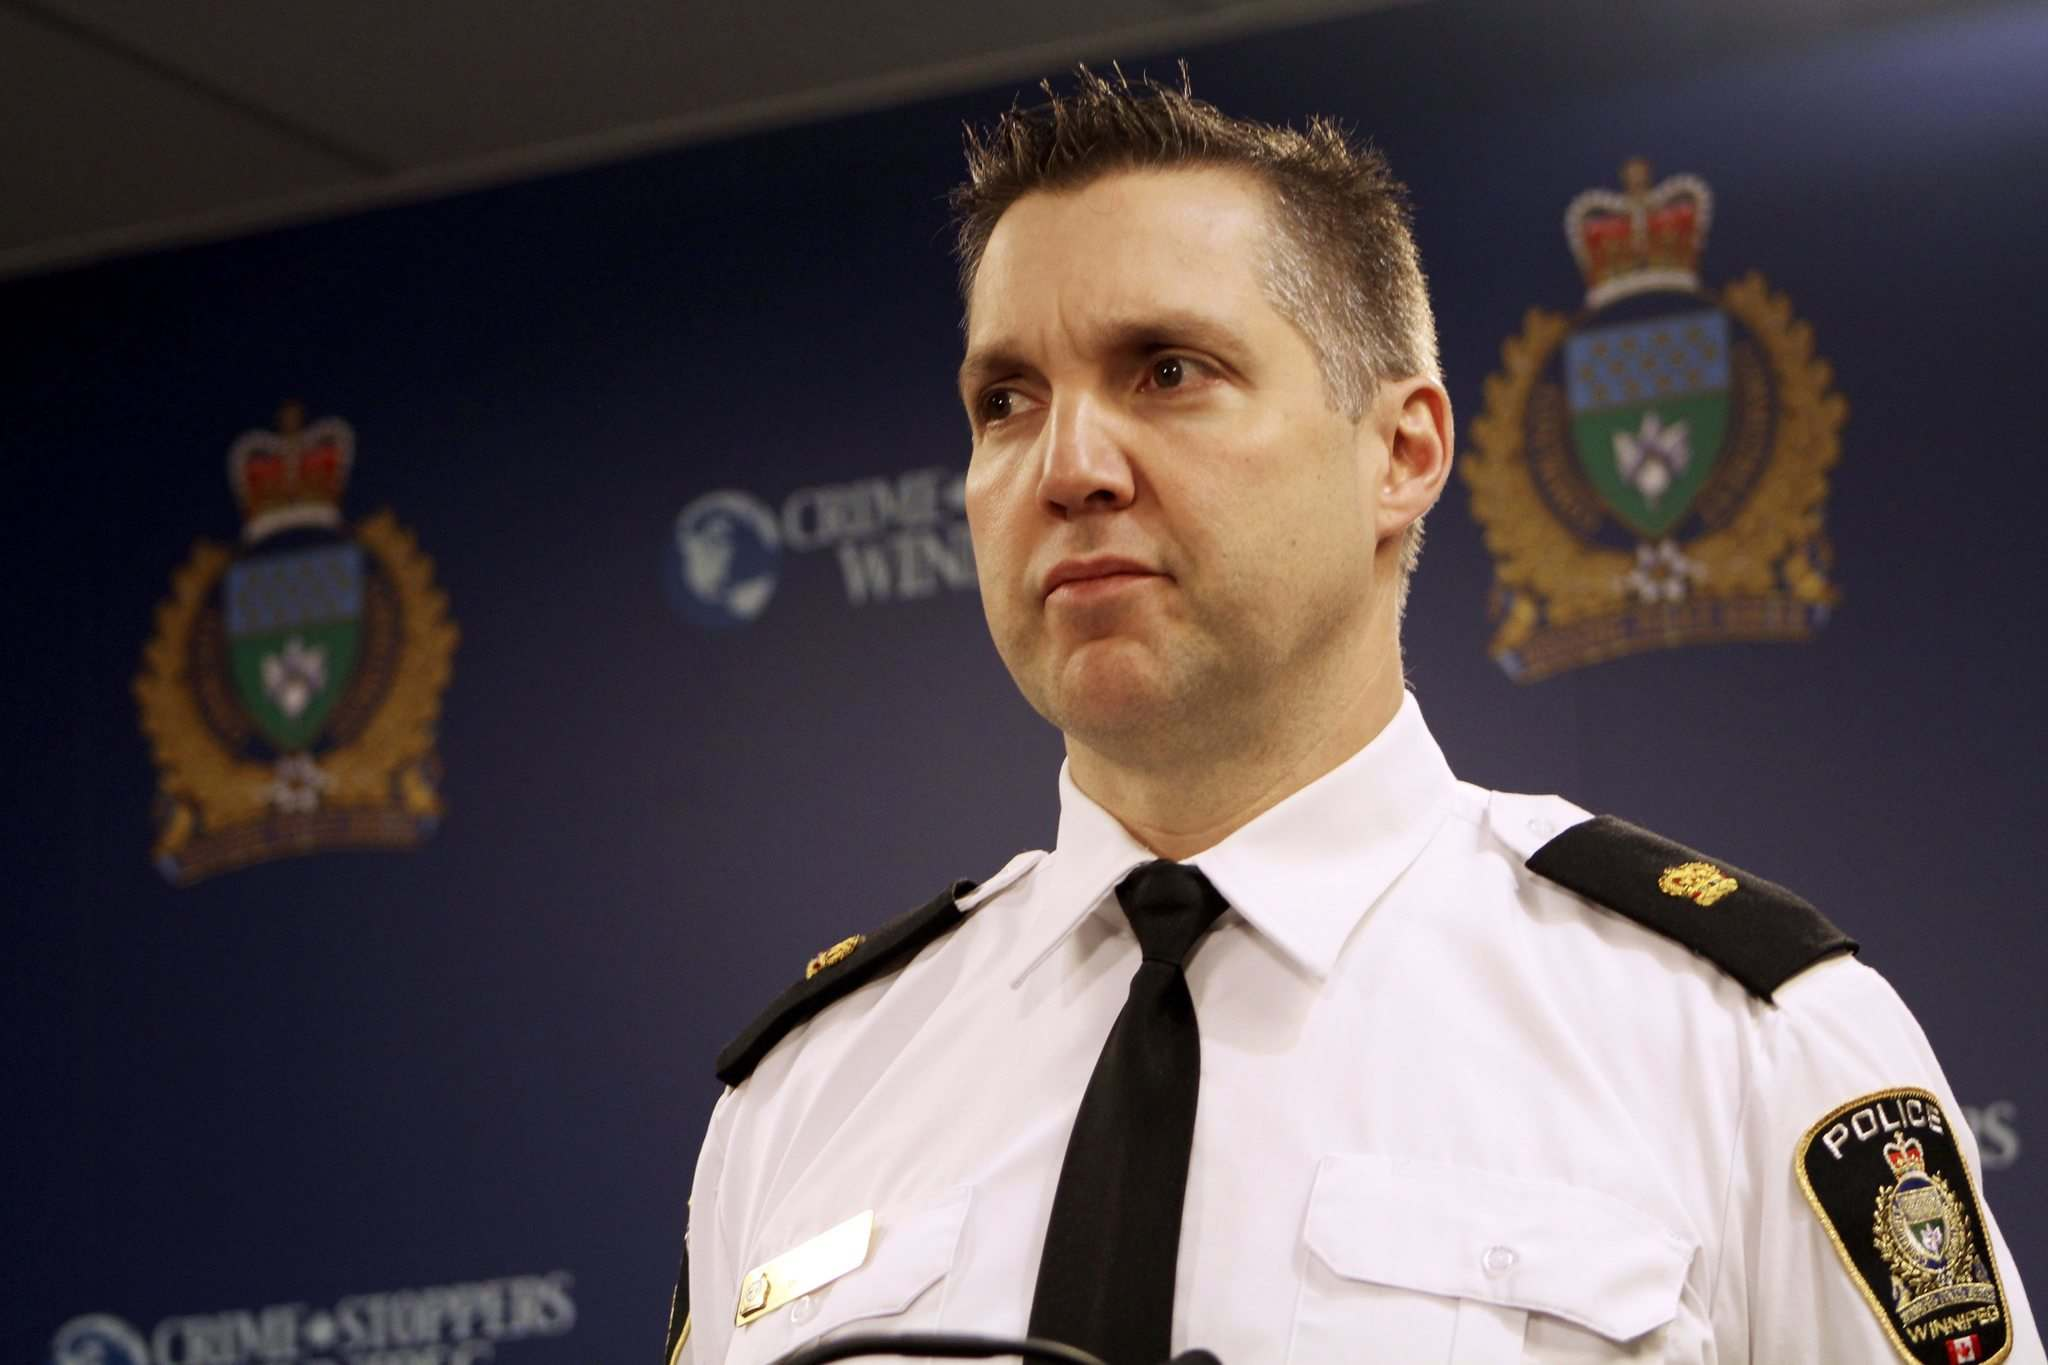 <p>Insp. John Lutz oversees the tactical team and says &#8216;they&rsquo;re police officers first, and they&rsquo;re on the street a lot when they&rsquo;re not training.&rsquo;</p>